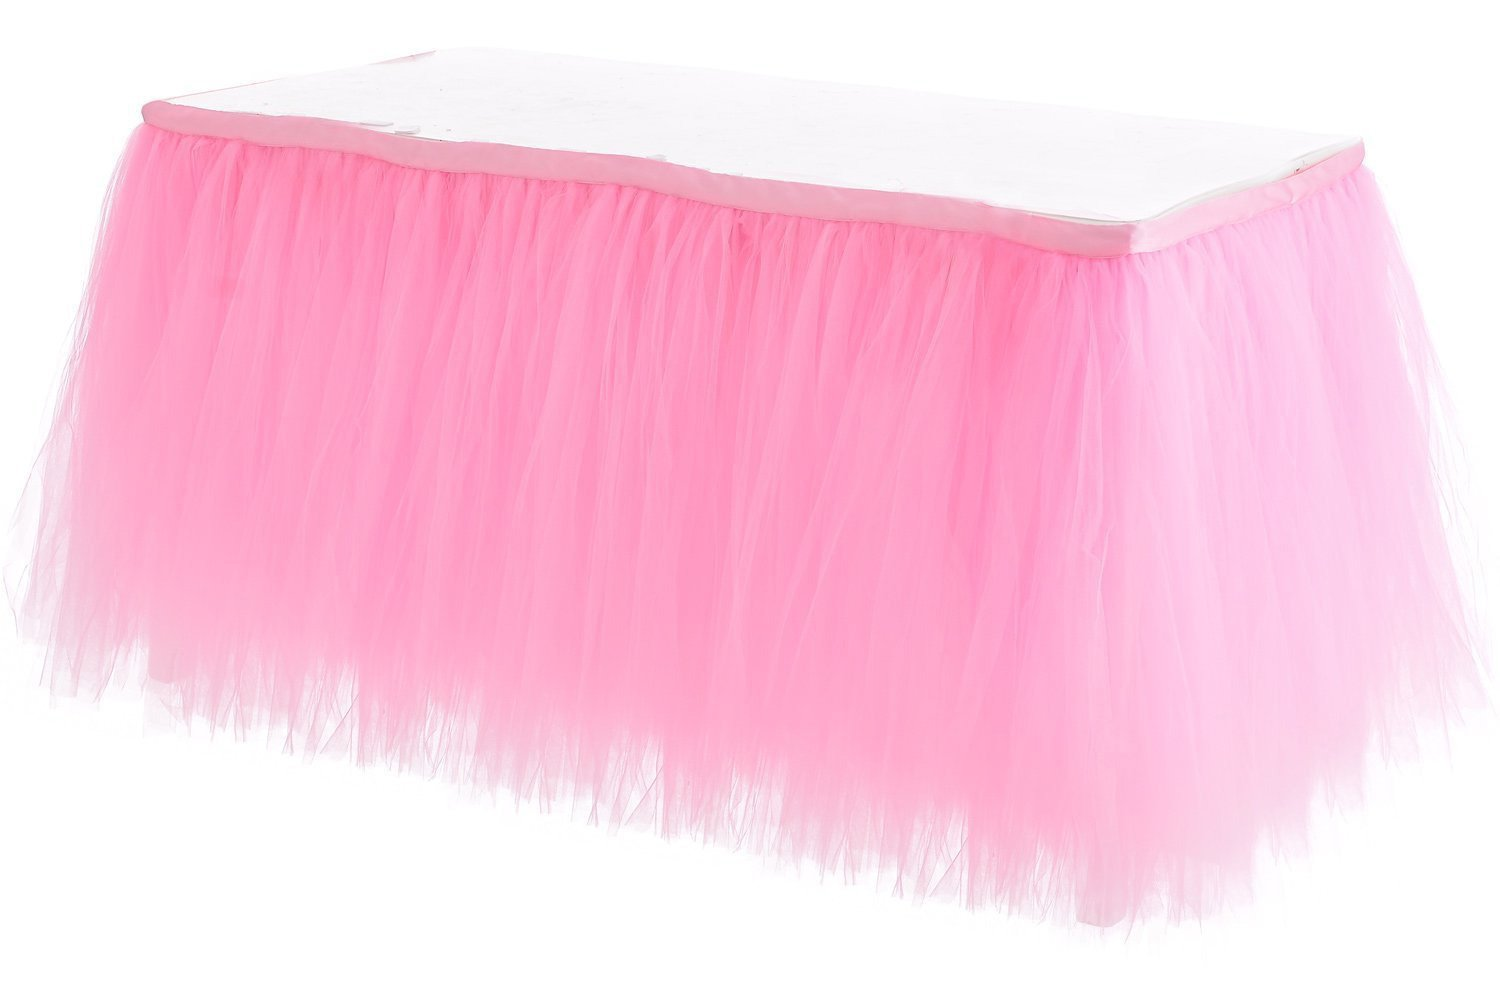 HBB Kids Handmade Tutu Tulle Table Skirt for Parties & Home Decoration, 3 yd (9'), Pink by HB HBB MAGIC